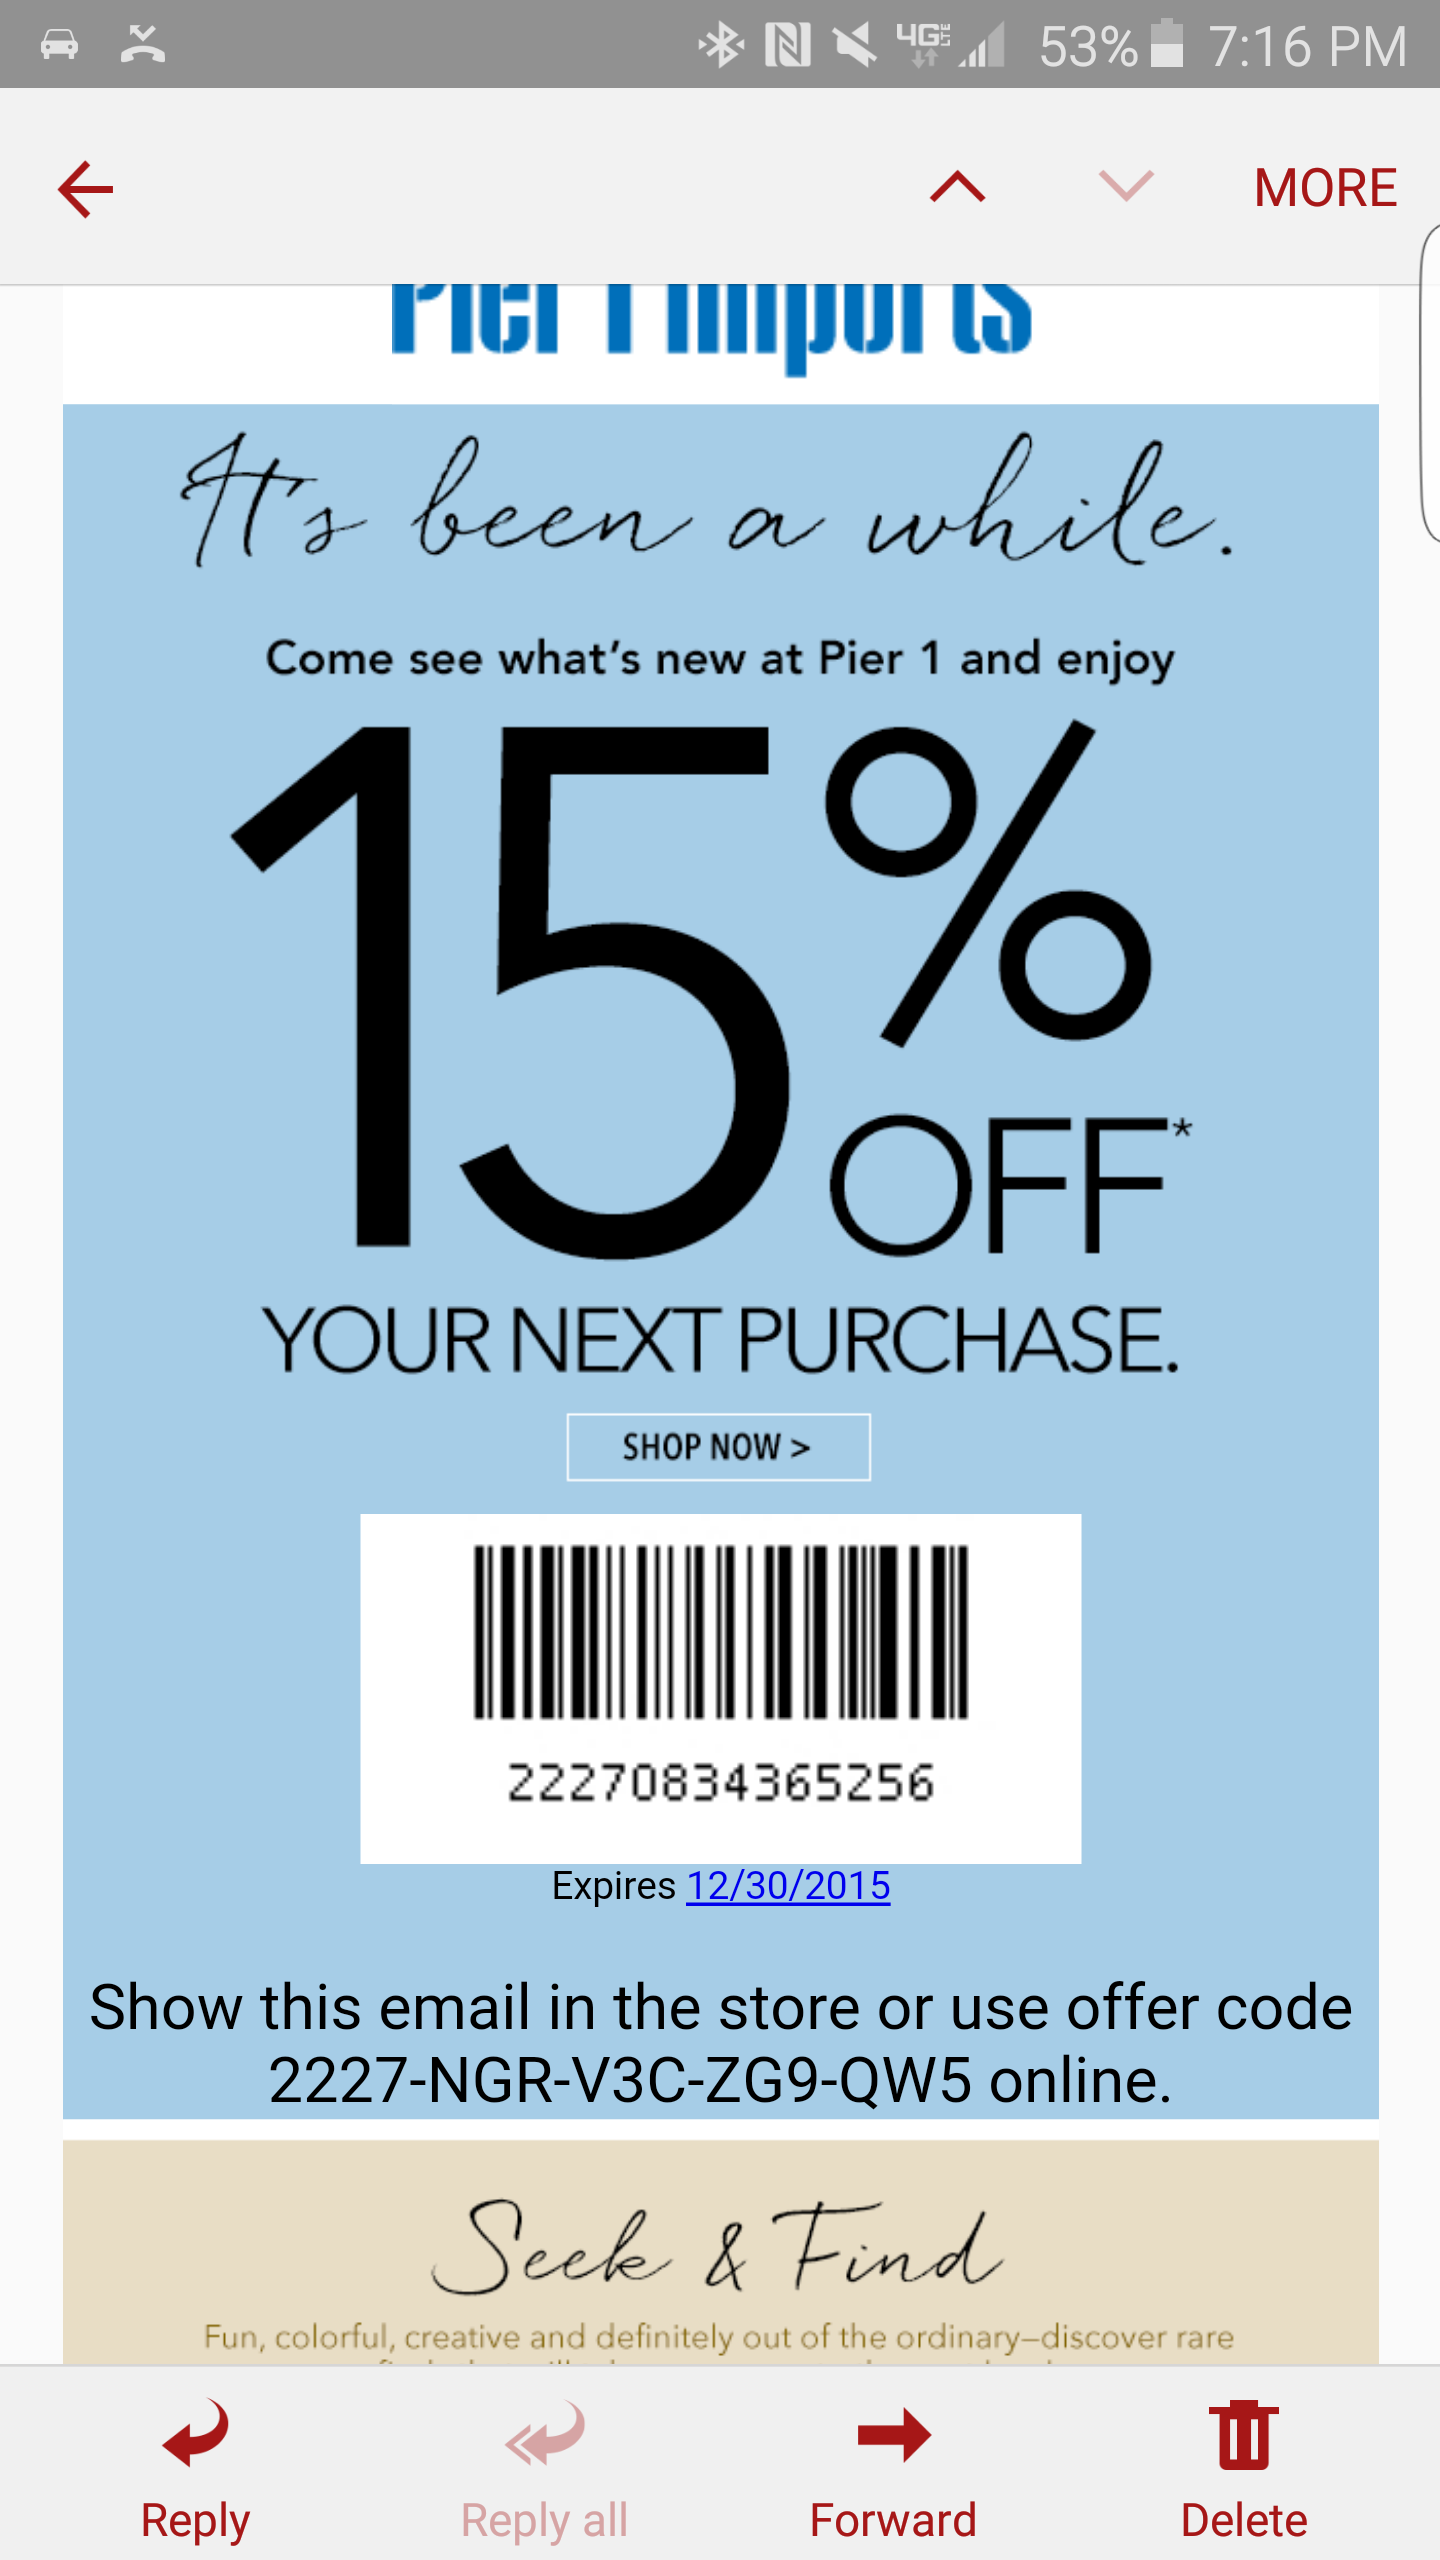 Info on pier 1 coupons. Get Results from 8 Search Engines!Huge Savings · Home Decor · Latest Coupons · Promo Codes.